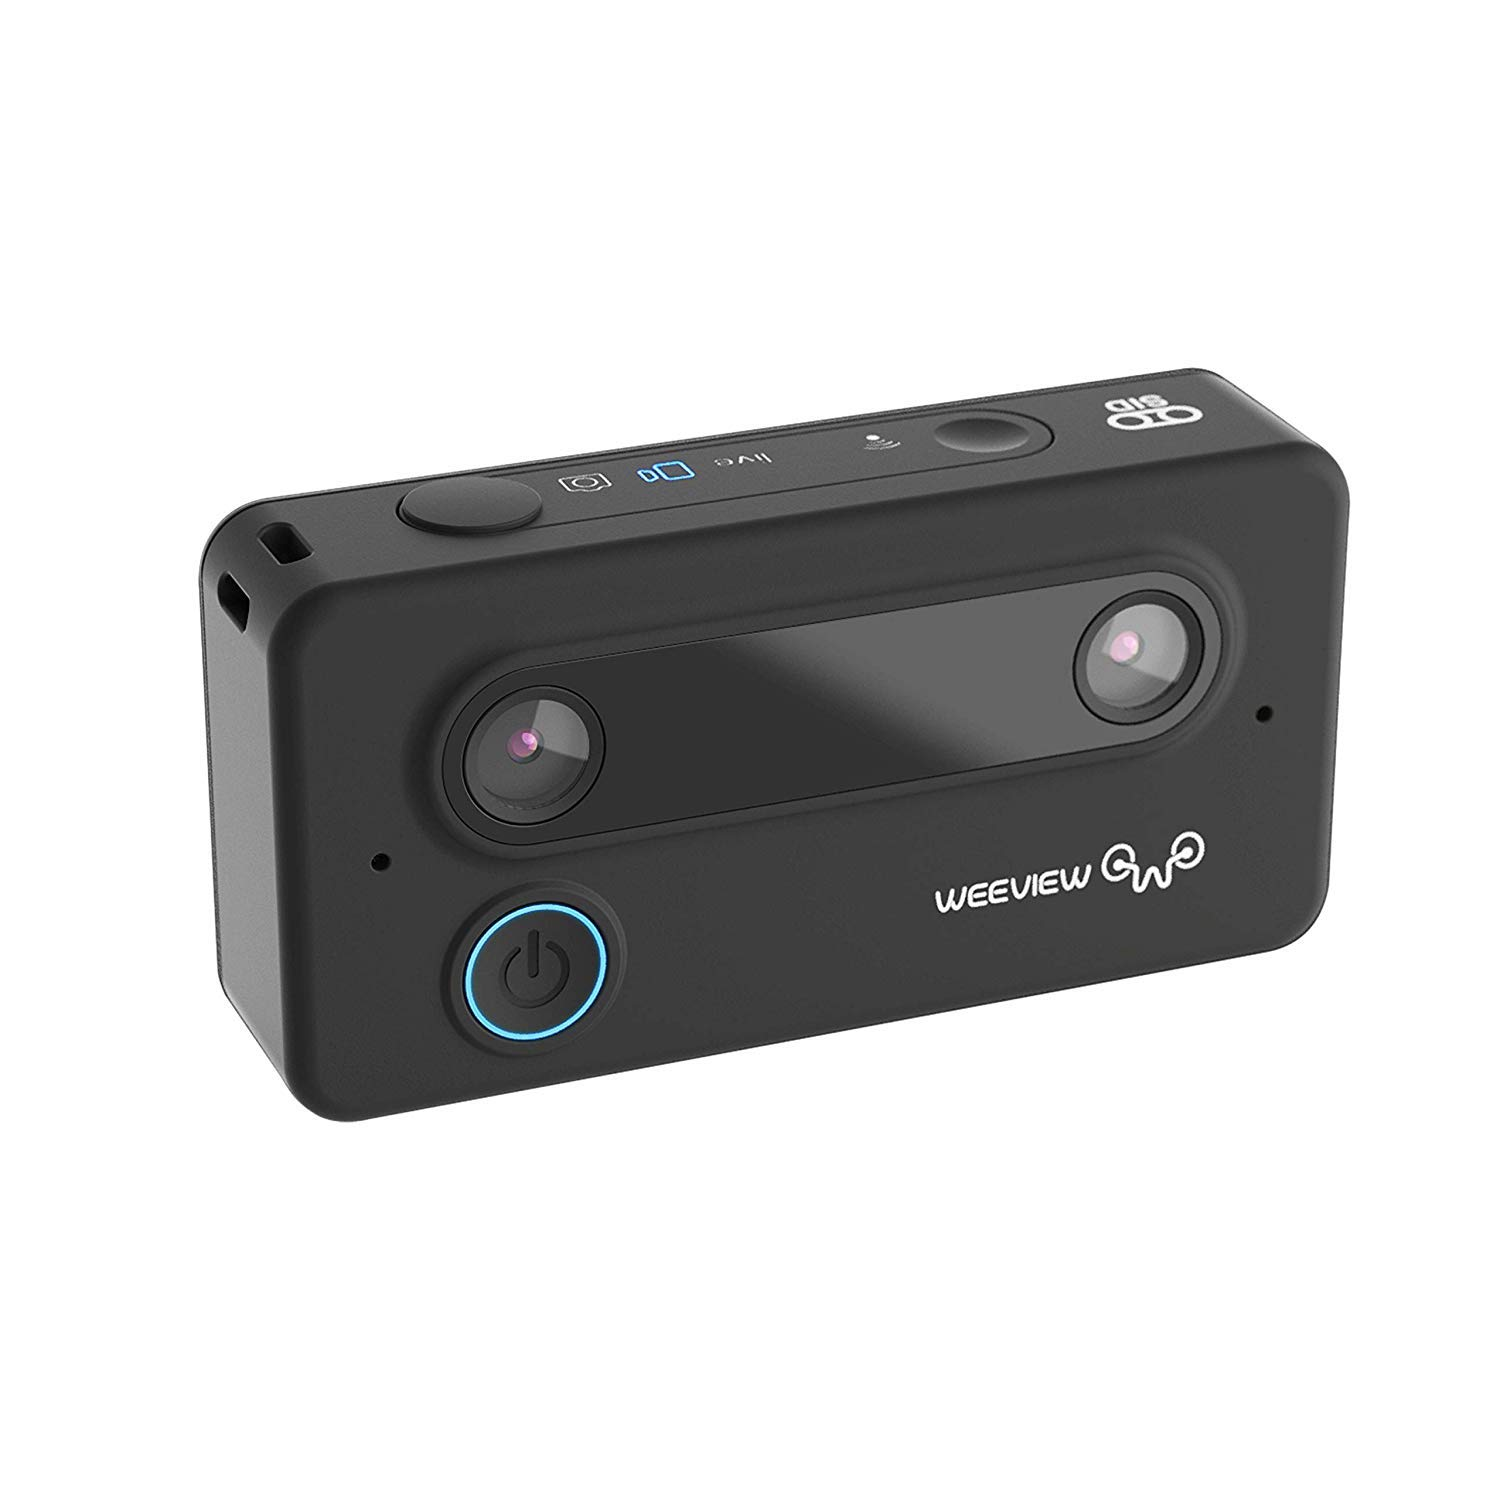 SID 3D Camera by Weeview - Mini HD 3K Wi-Fi Video Camera for Android and iOS Devices, VR-Ready Photo Camera by WEEVIEW